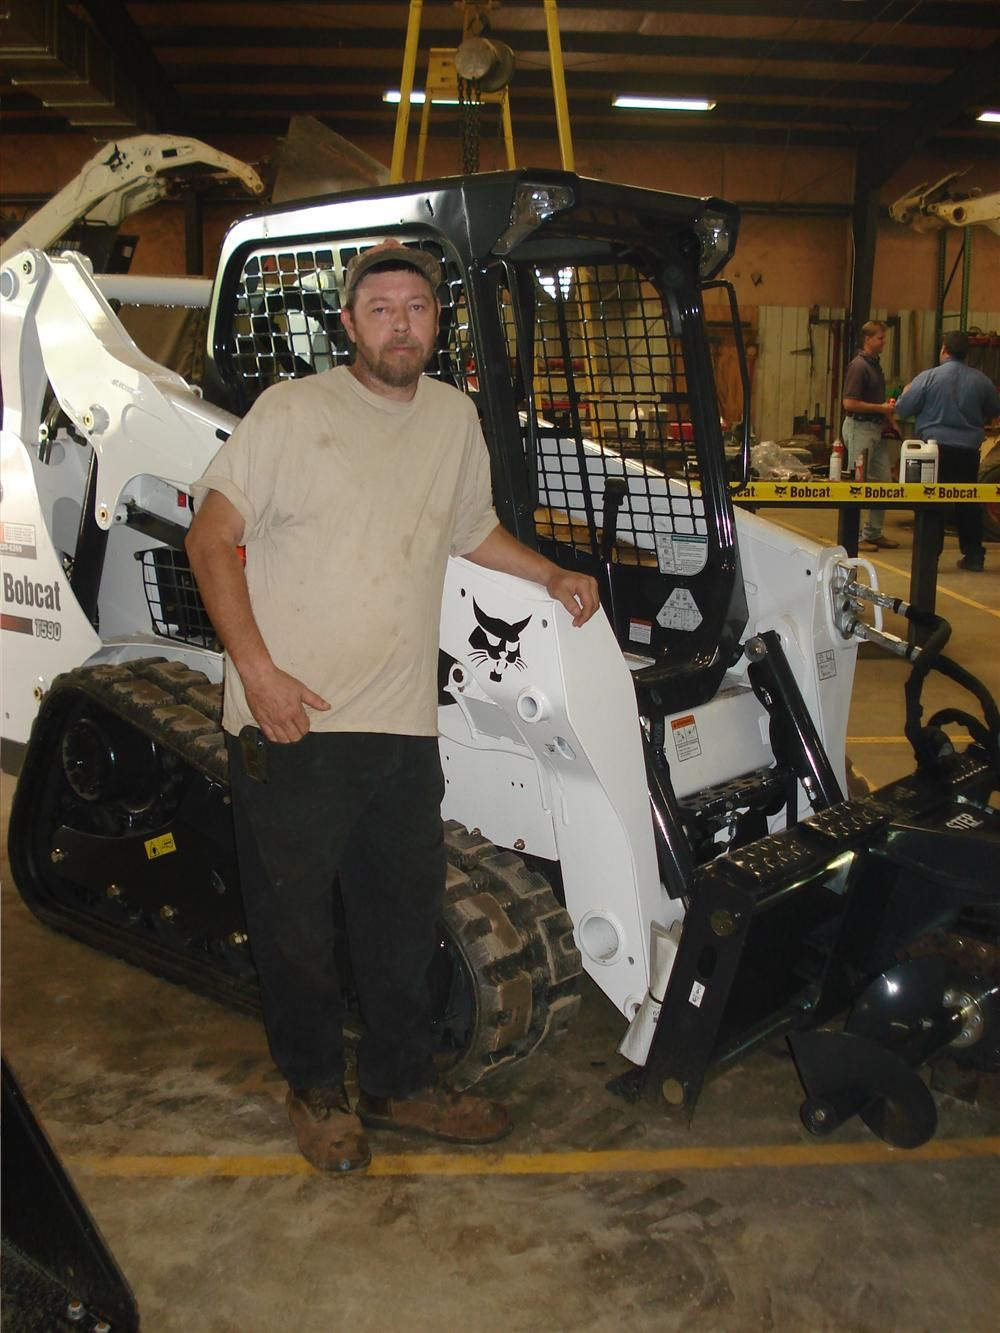 Chris Turner of George White Construction in Cowpens, S.C., spends time looking over the T590 Bobcat track loader.